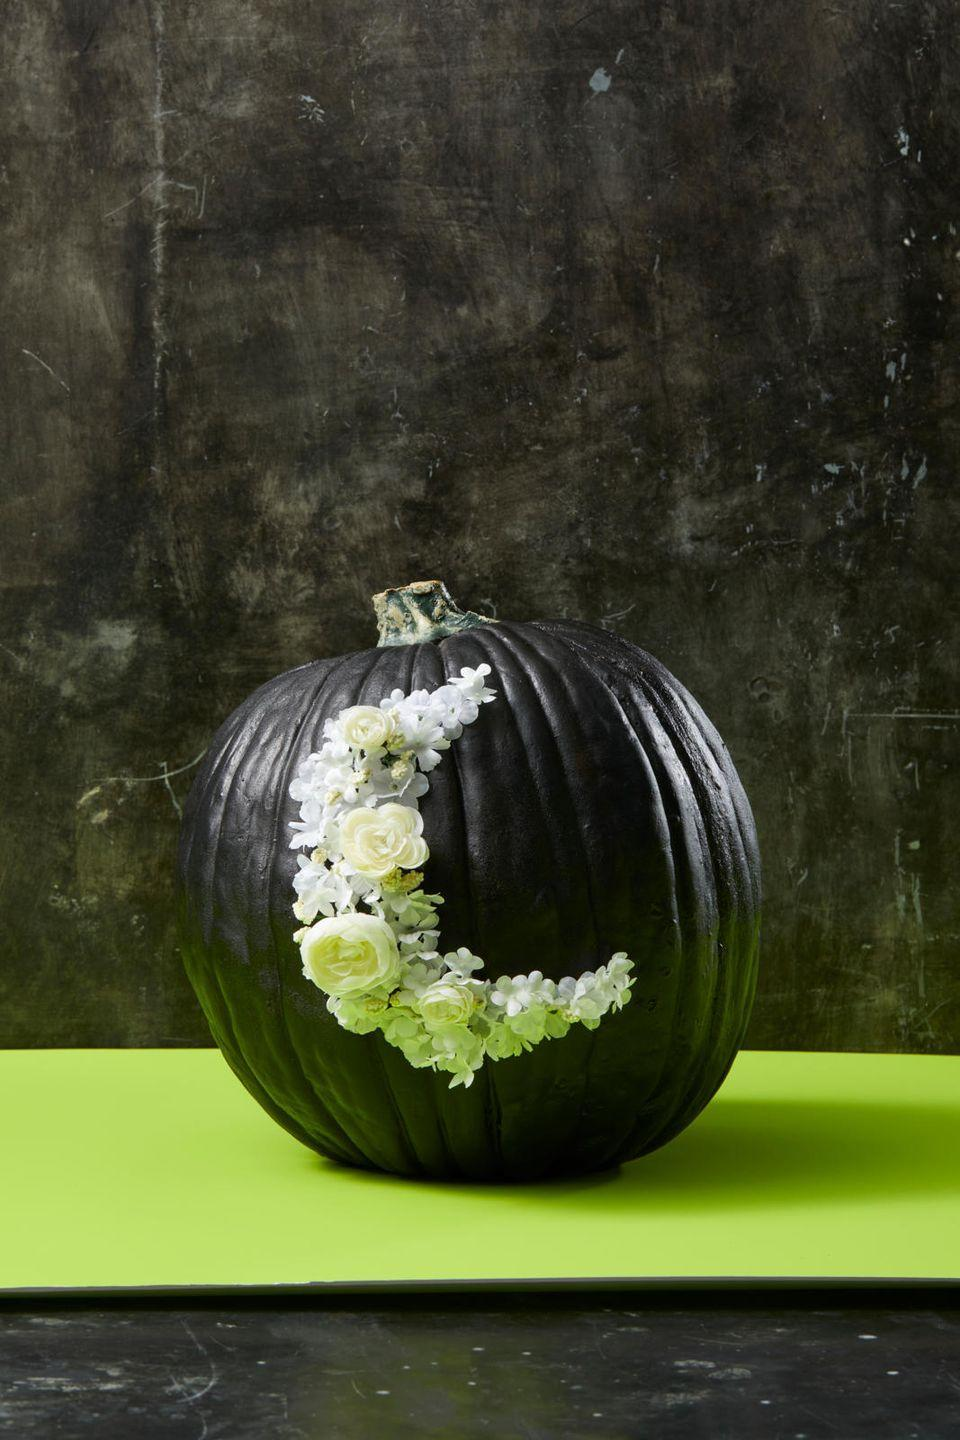 """<p>If your pumpkin carving skills could use some work, rely on fake flowers and paint to disguise any mistakes. First, paint a real or faux pumpkin black and use chalk to draw an outline of a crescent moon. Then, use an awl punch to punch a series of holes within the moon shape, keeping the holes a minimum of 1/2"""" apart. Wipe away the chalk outline, then poke faux flower stems into the holes.<strong><br></strong></p><p><a class=""""link rapid-noclick-resp"""" href=""""https://www.amazon.com/TEKTON-65731-Scratch-Punch-Awl/dp/B01BBLPPJW?tag=syn-yahoo-20&ascsubtag=%5Bartid%7C10055.g.238%5Bsrc%7Cyahoo-us"""" rel=""""nofollow noopener"""" target=""""_blank"""" data-ylk=""""slk:SHOP AWL PUNCHES"""">SHOP AWL PUNCHES</a></p><p><strong>RELATED: </strong><a href=""""https://www.goodhousekeeping.com/holidays/halloween-ideas/g2592/pumpkin-painting-ideas/"""" rel=""""nofollow noopener"""" target=""""_blank"""" data-ylk=""""slk:Beautiful Painted Pumpkin Ideas"""" class=""""link rapid-noclick-resp"""">Beautiful Painted Pumpkin Ideas </a></p>"""